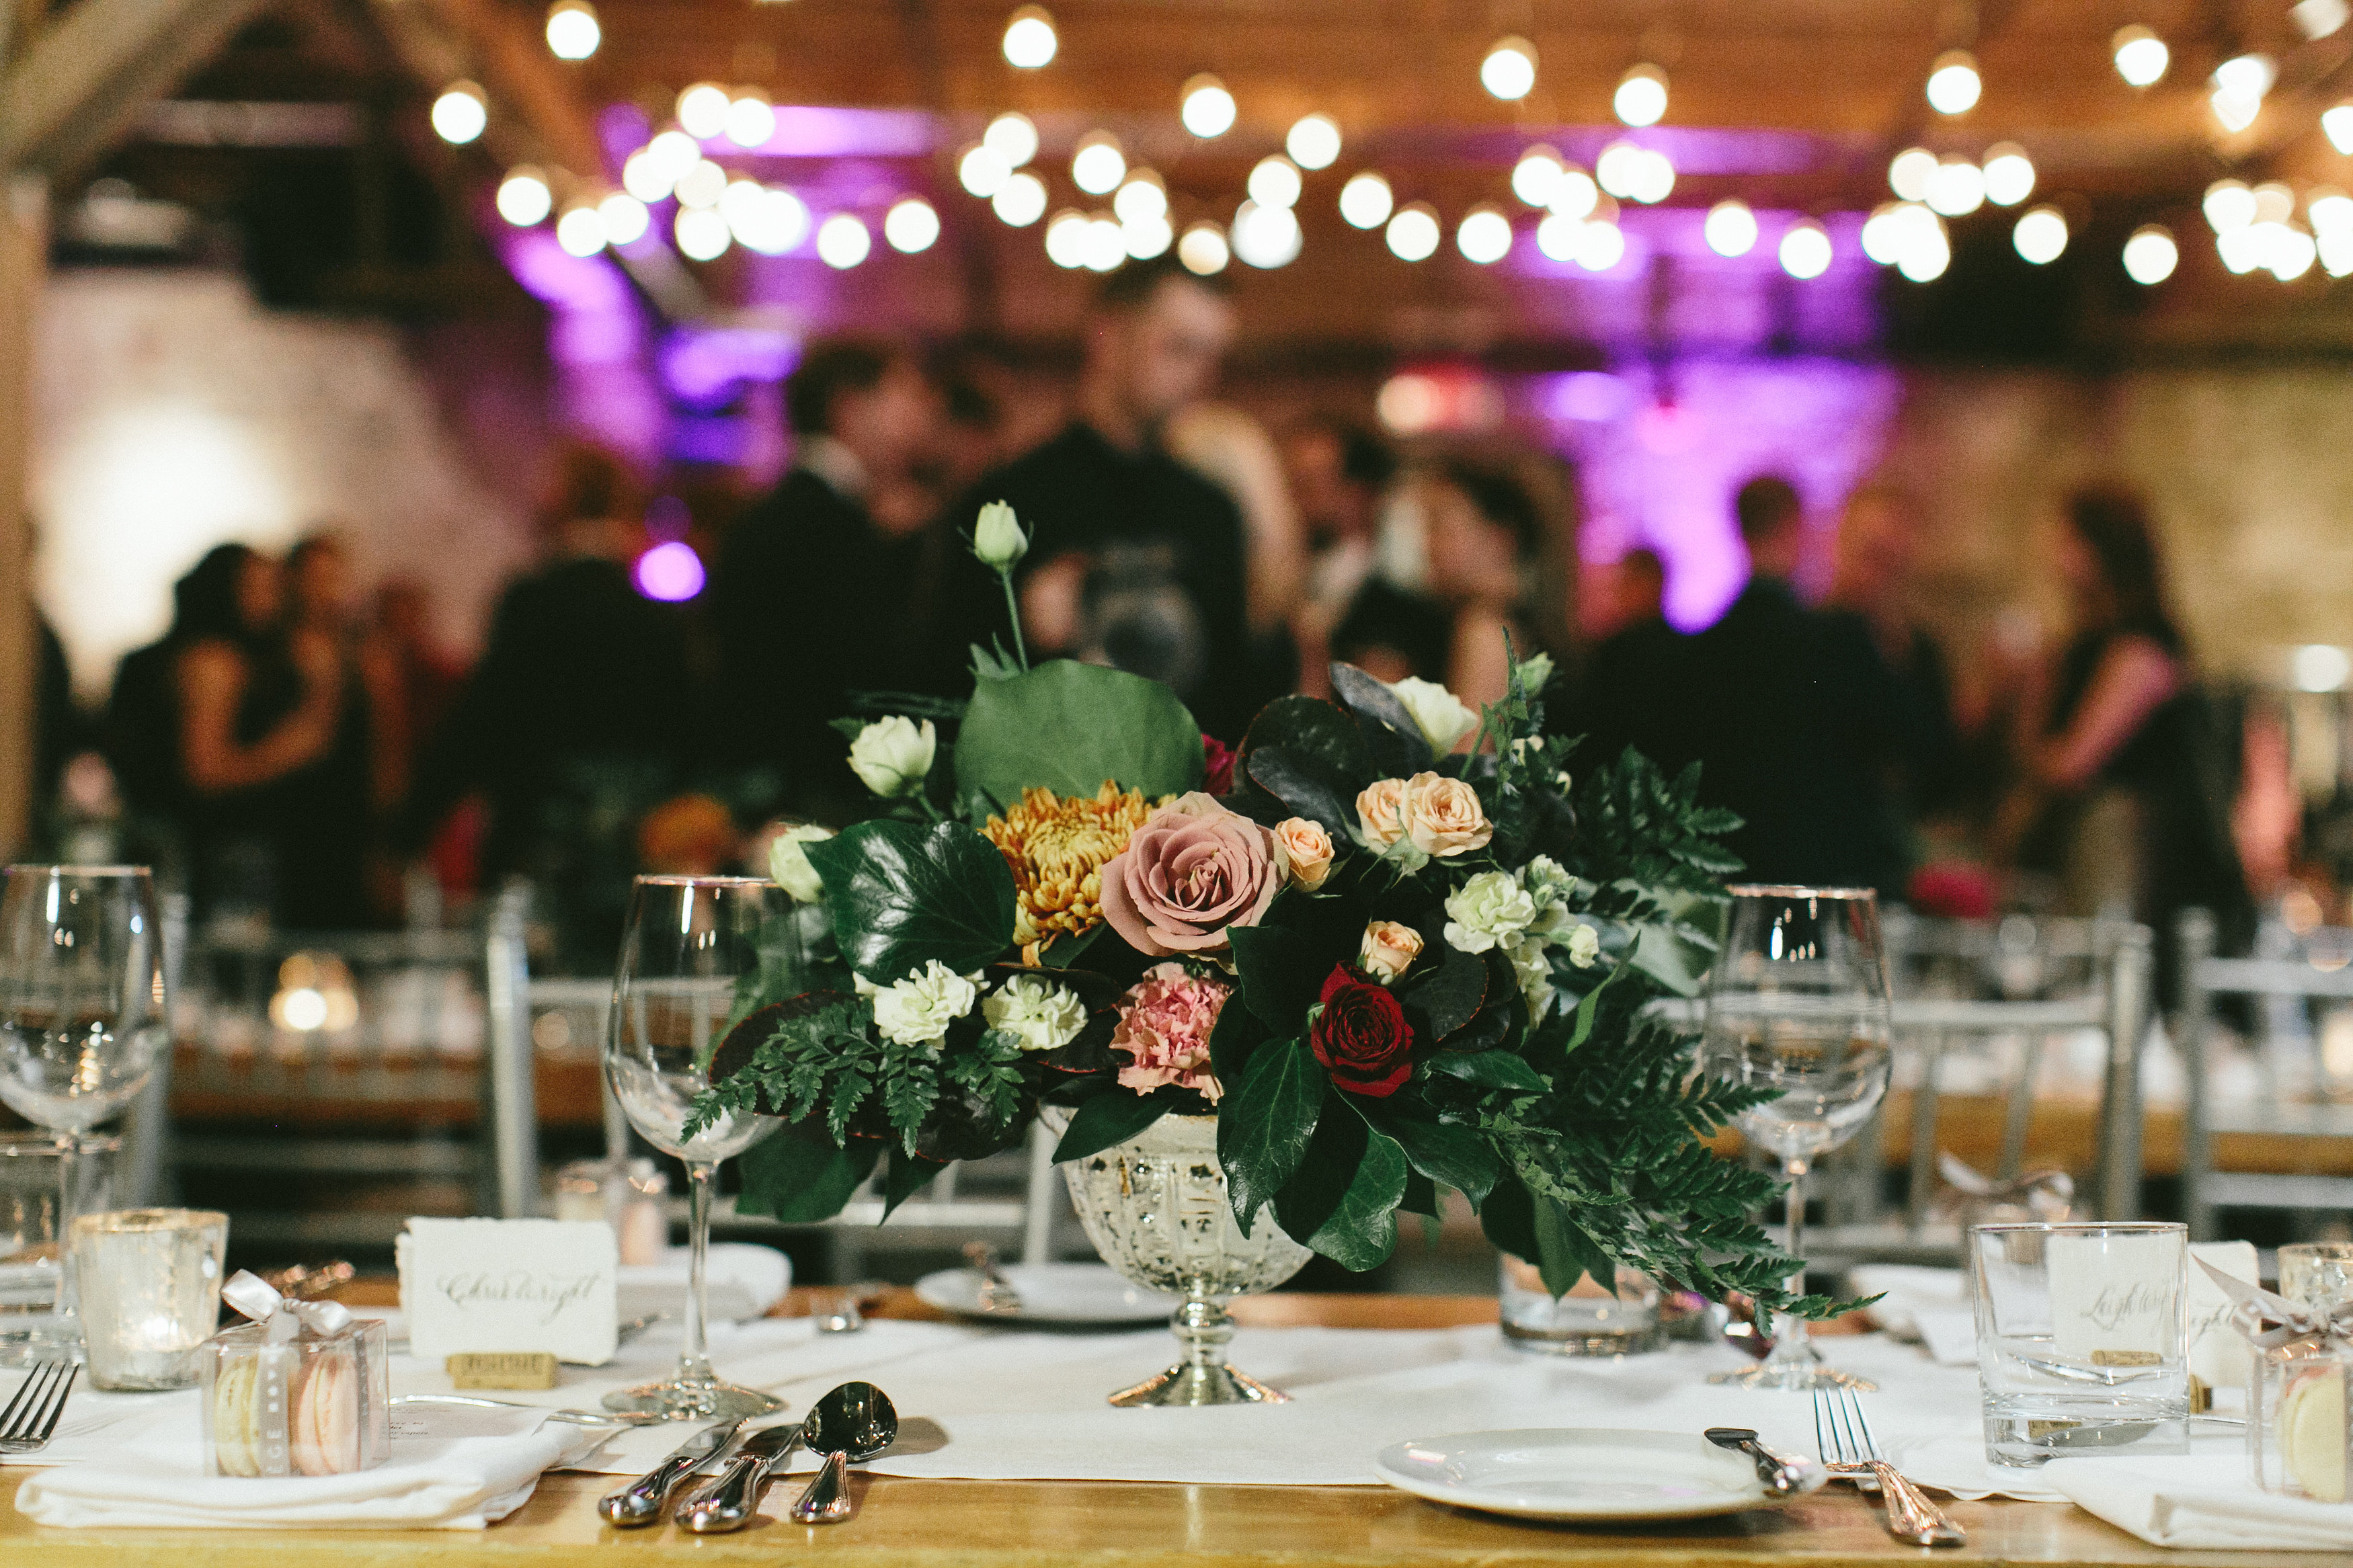 Elegant and Rustic Toronto Wedding in the Distillery District - Organic and loose floral centrepiece